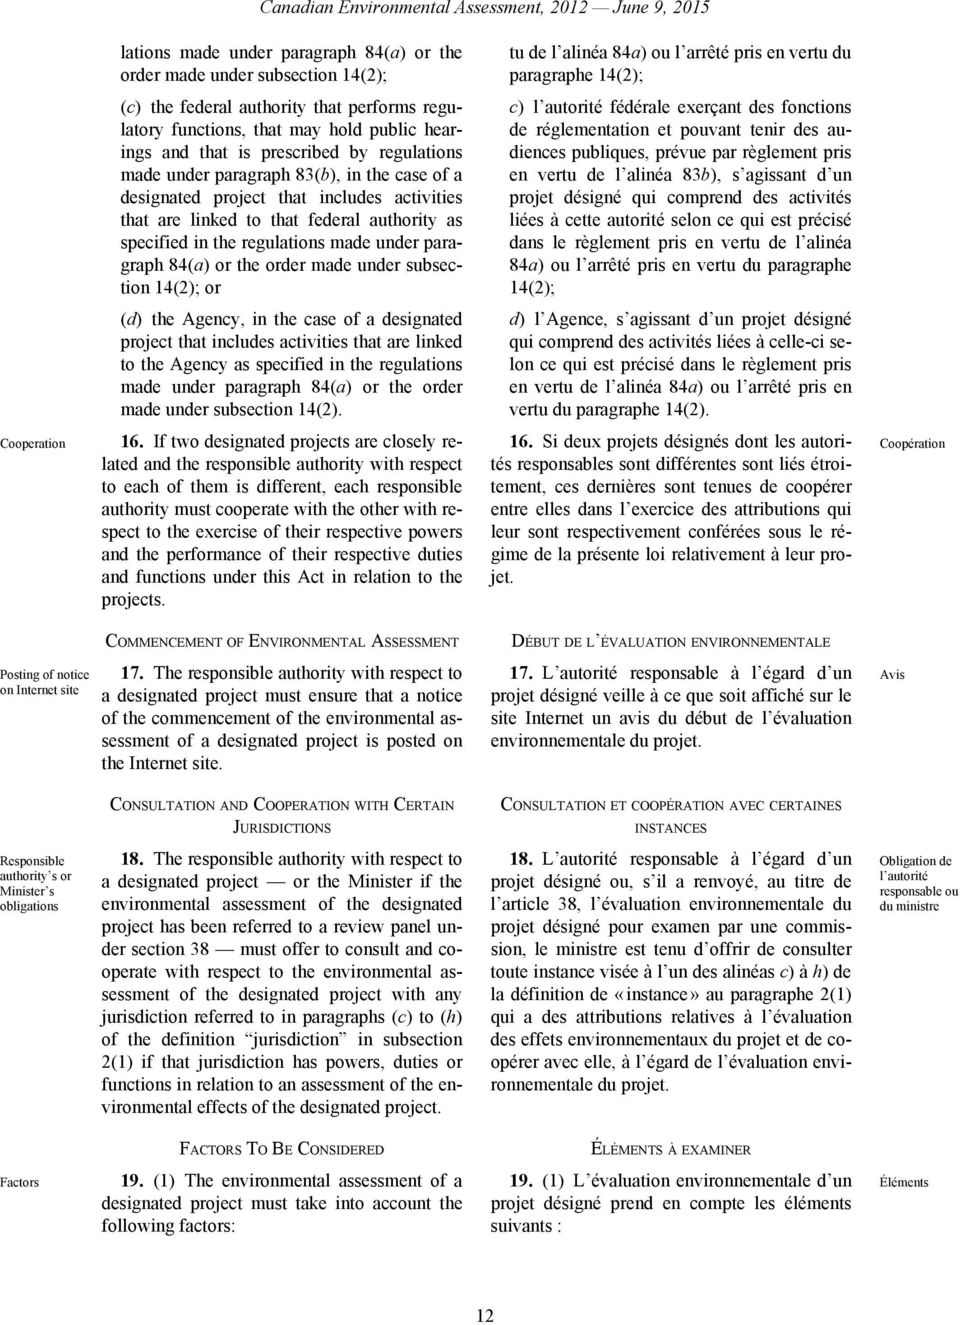 includes activities that are linked to that federal authority as specified in the regulations made under paragraph 84(a) or the order made under subsection 14(2); or c) l autorité fédérale exerçant